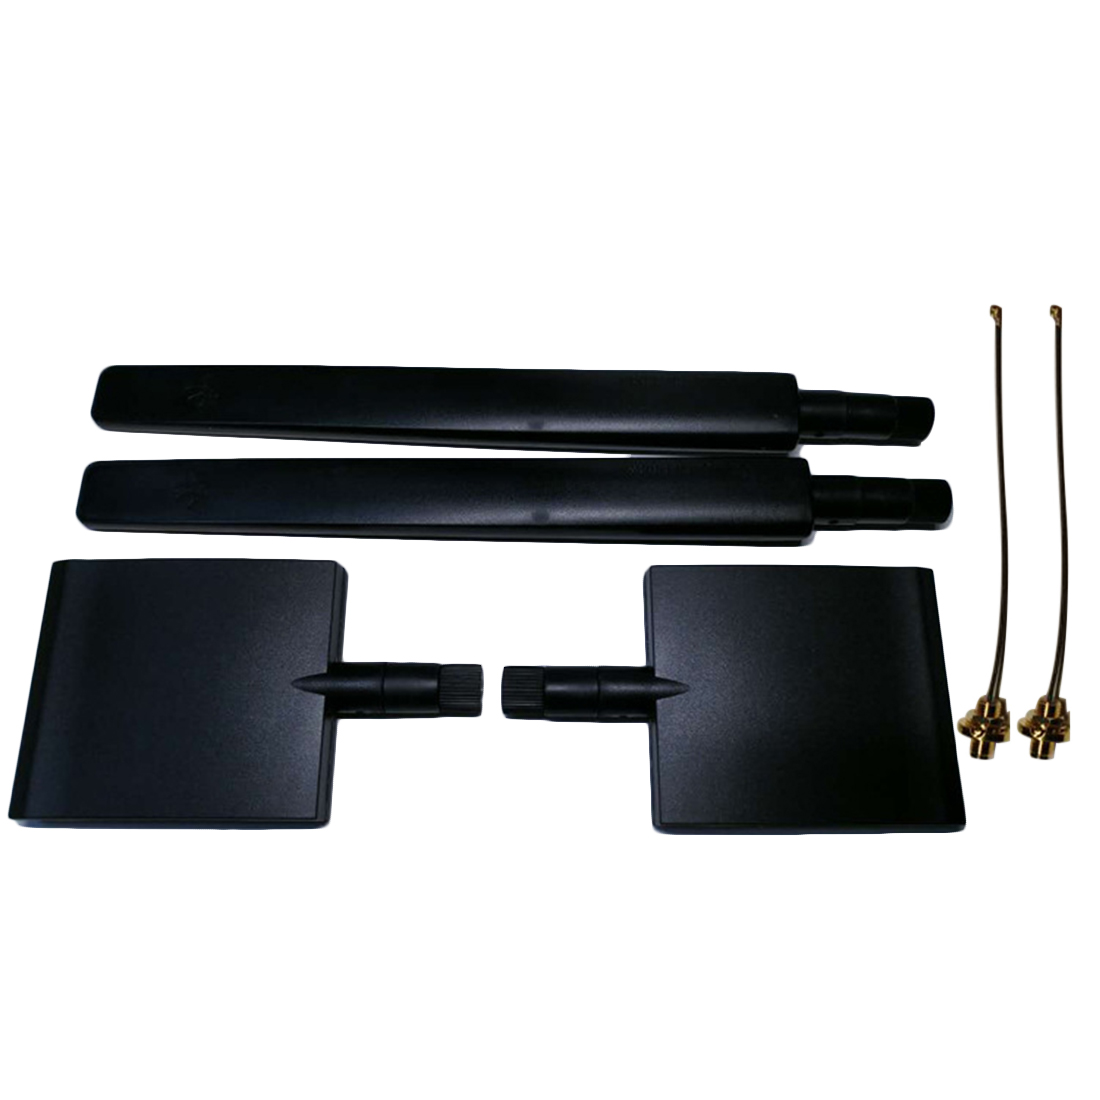 Argtek HX OS71 Omni directional Orientation Antenna Kit Extended Range Gain Antenna for DJI Mavic Pro